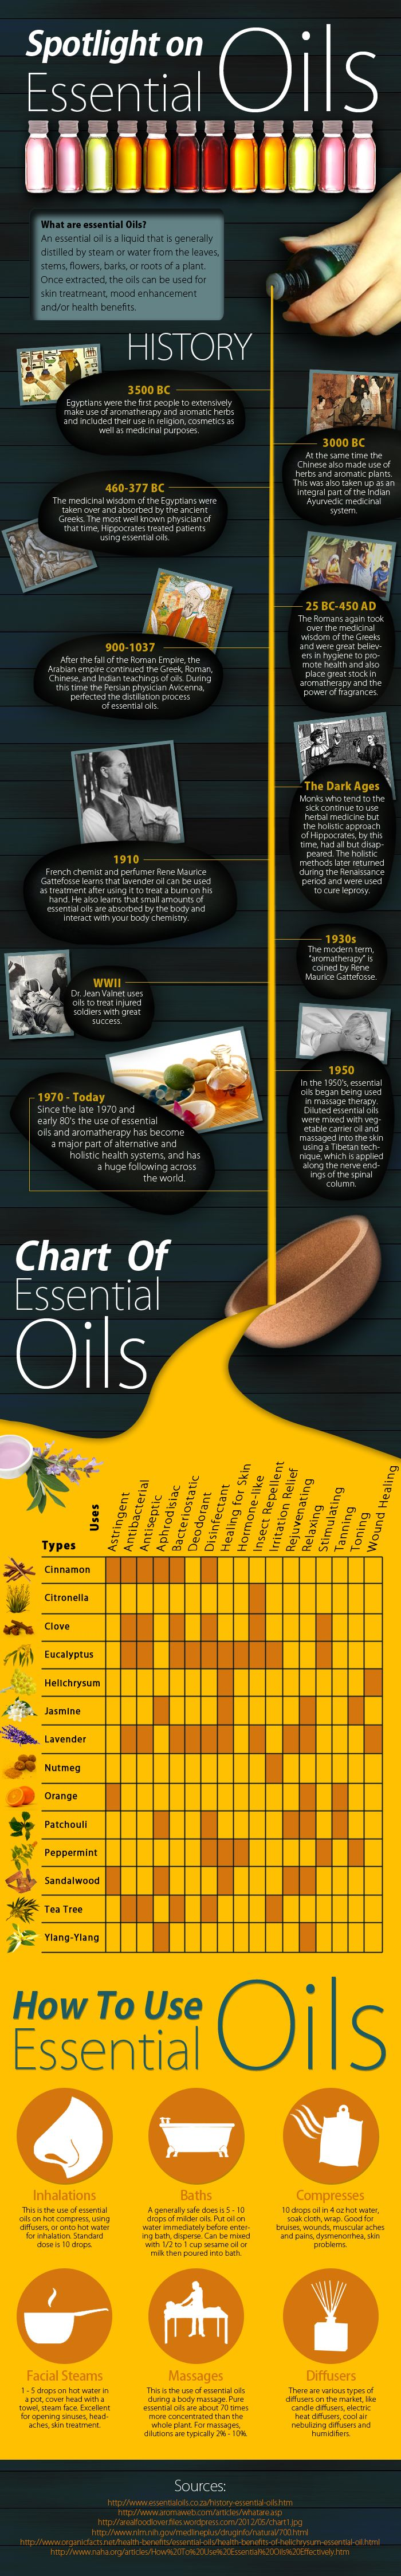 Information on some of the most popular essential oils!